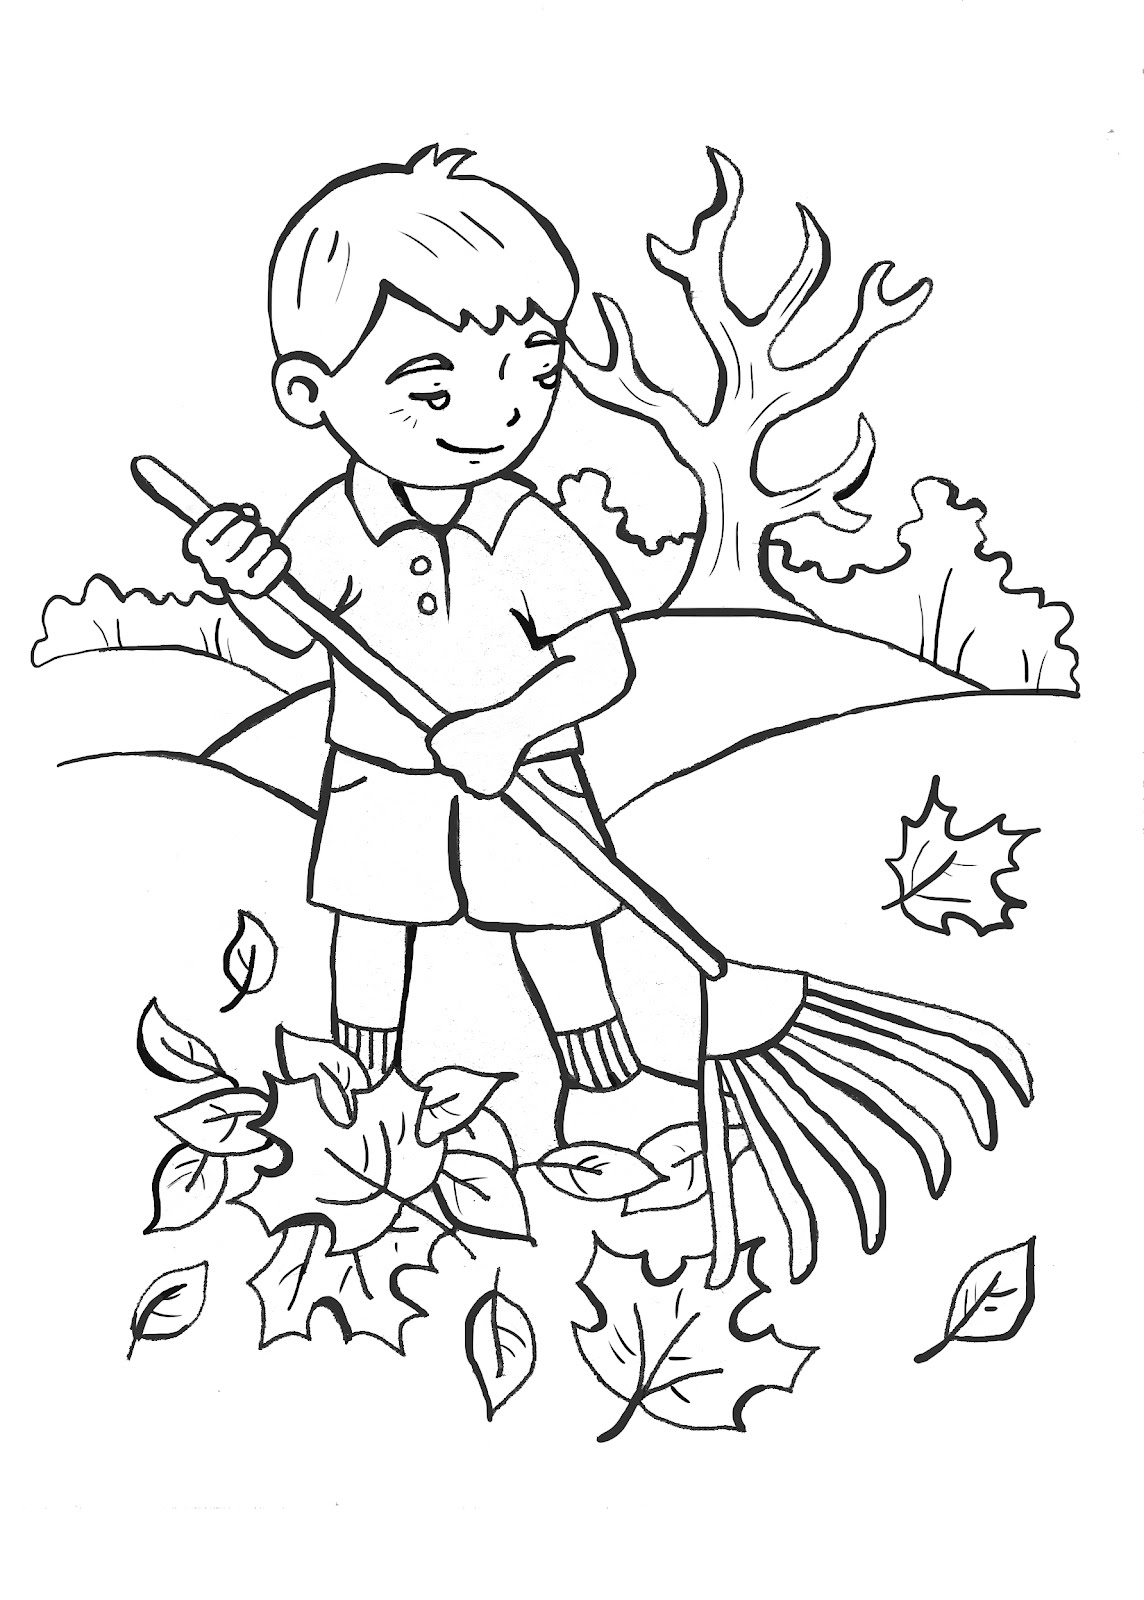 colored pages stuart little coloring pages learn to coloring pages colored